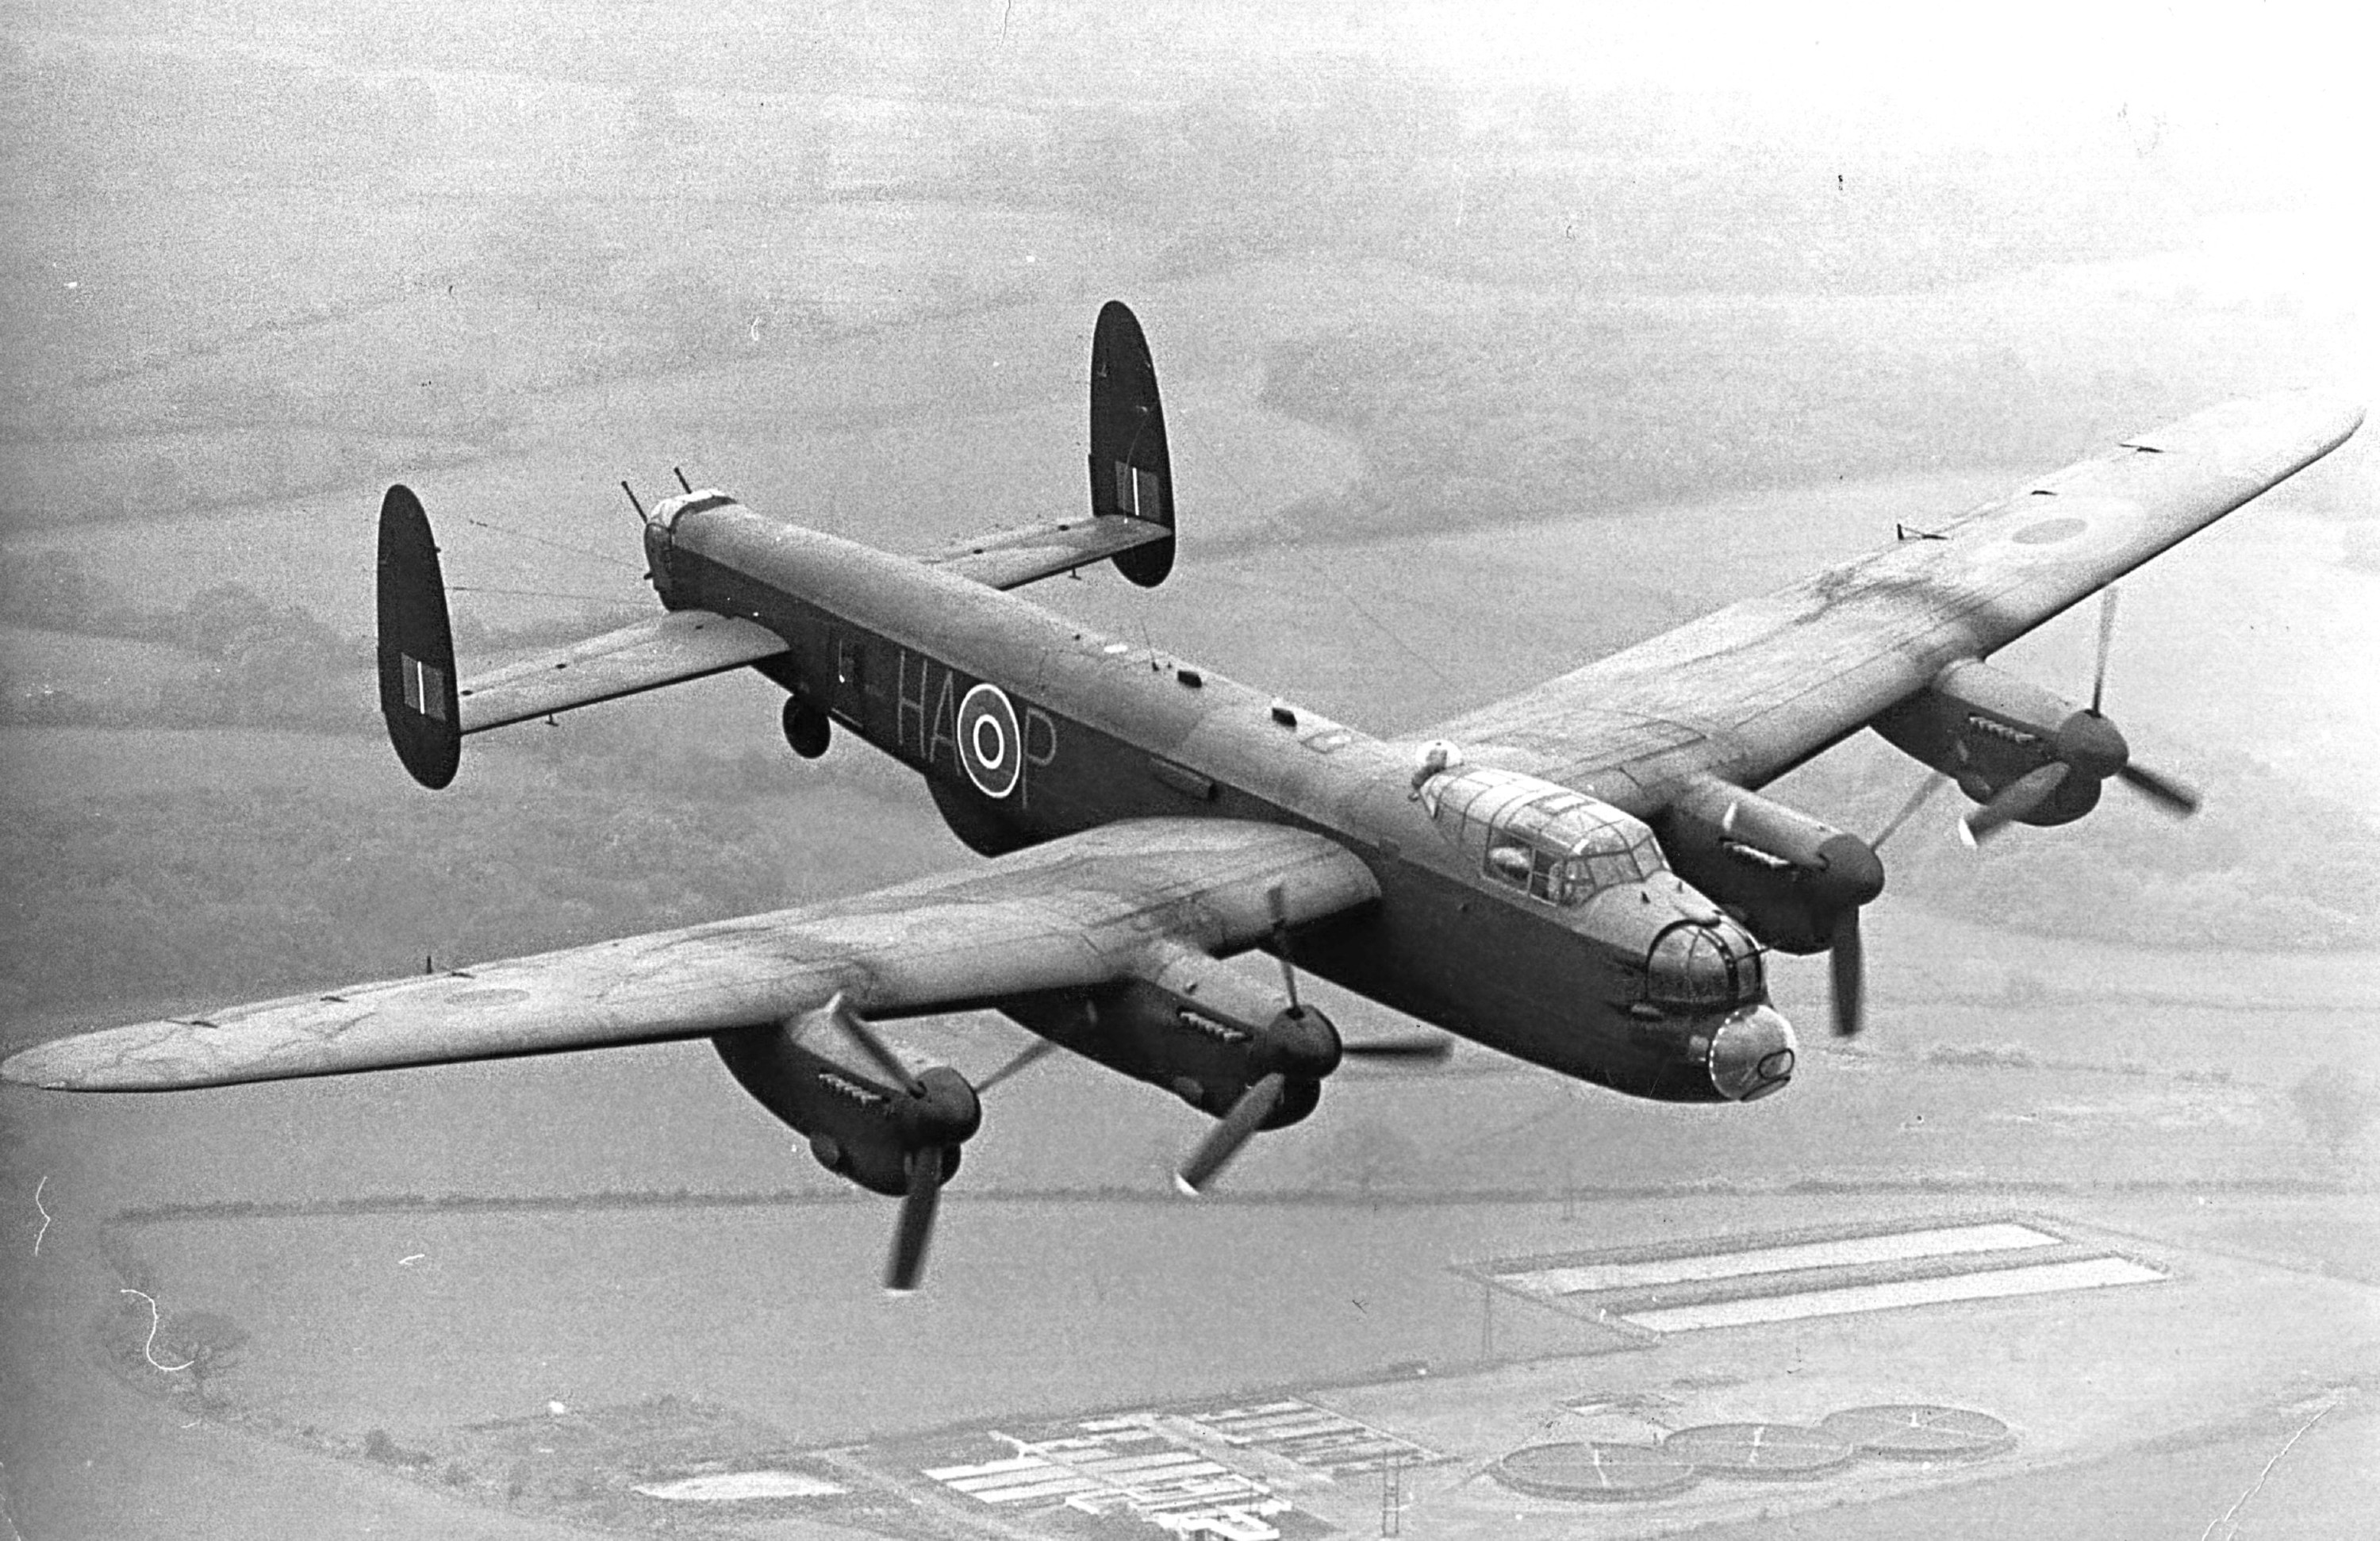 A Lancaster Bomber (Hulton Archive/Getty Images)